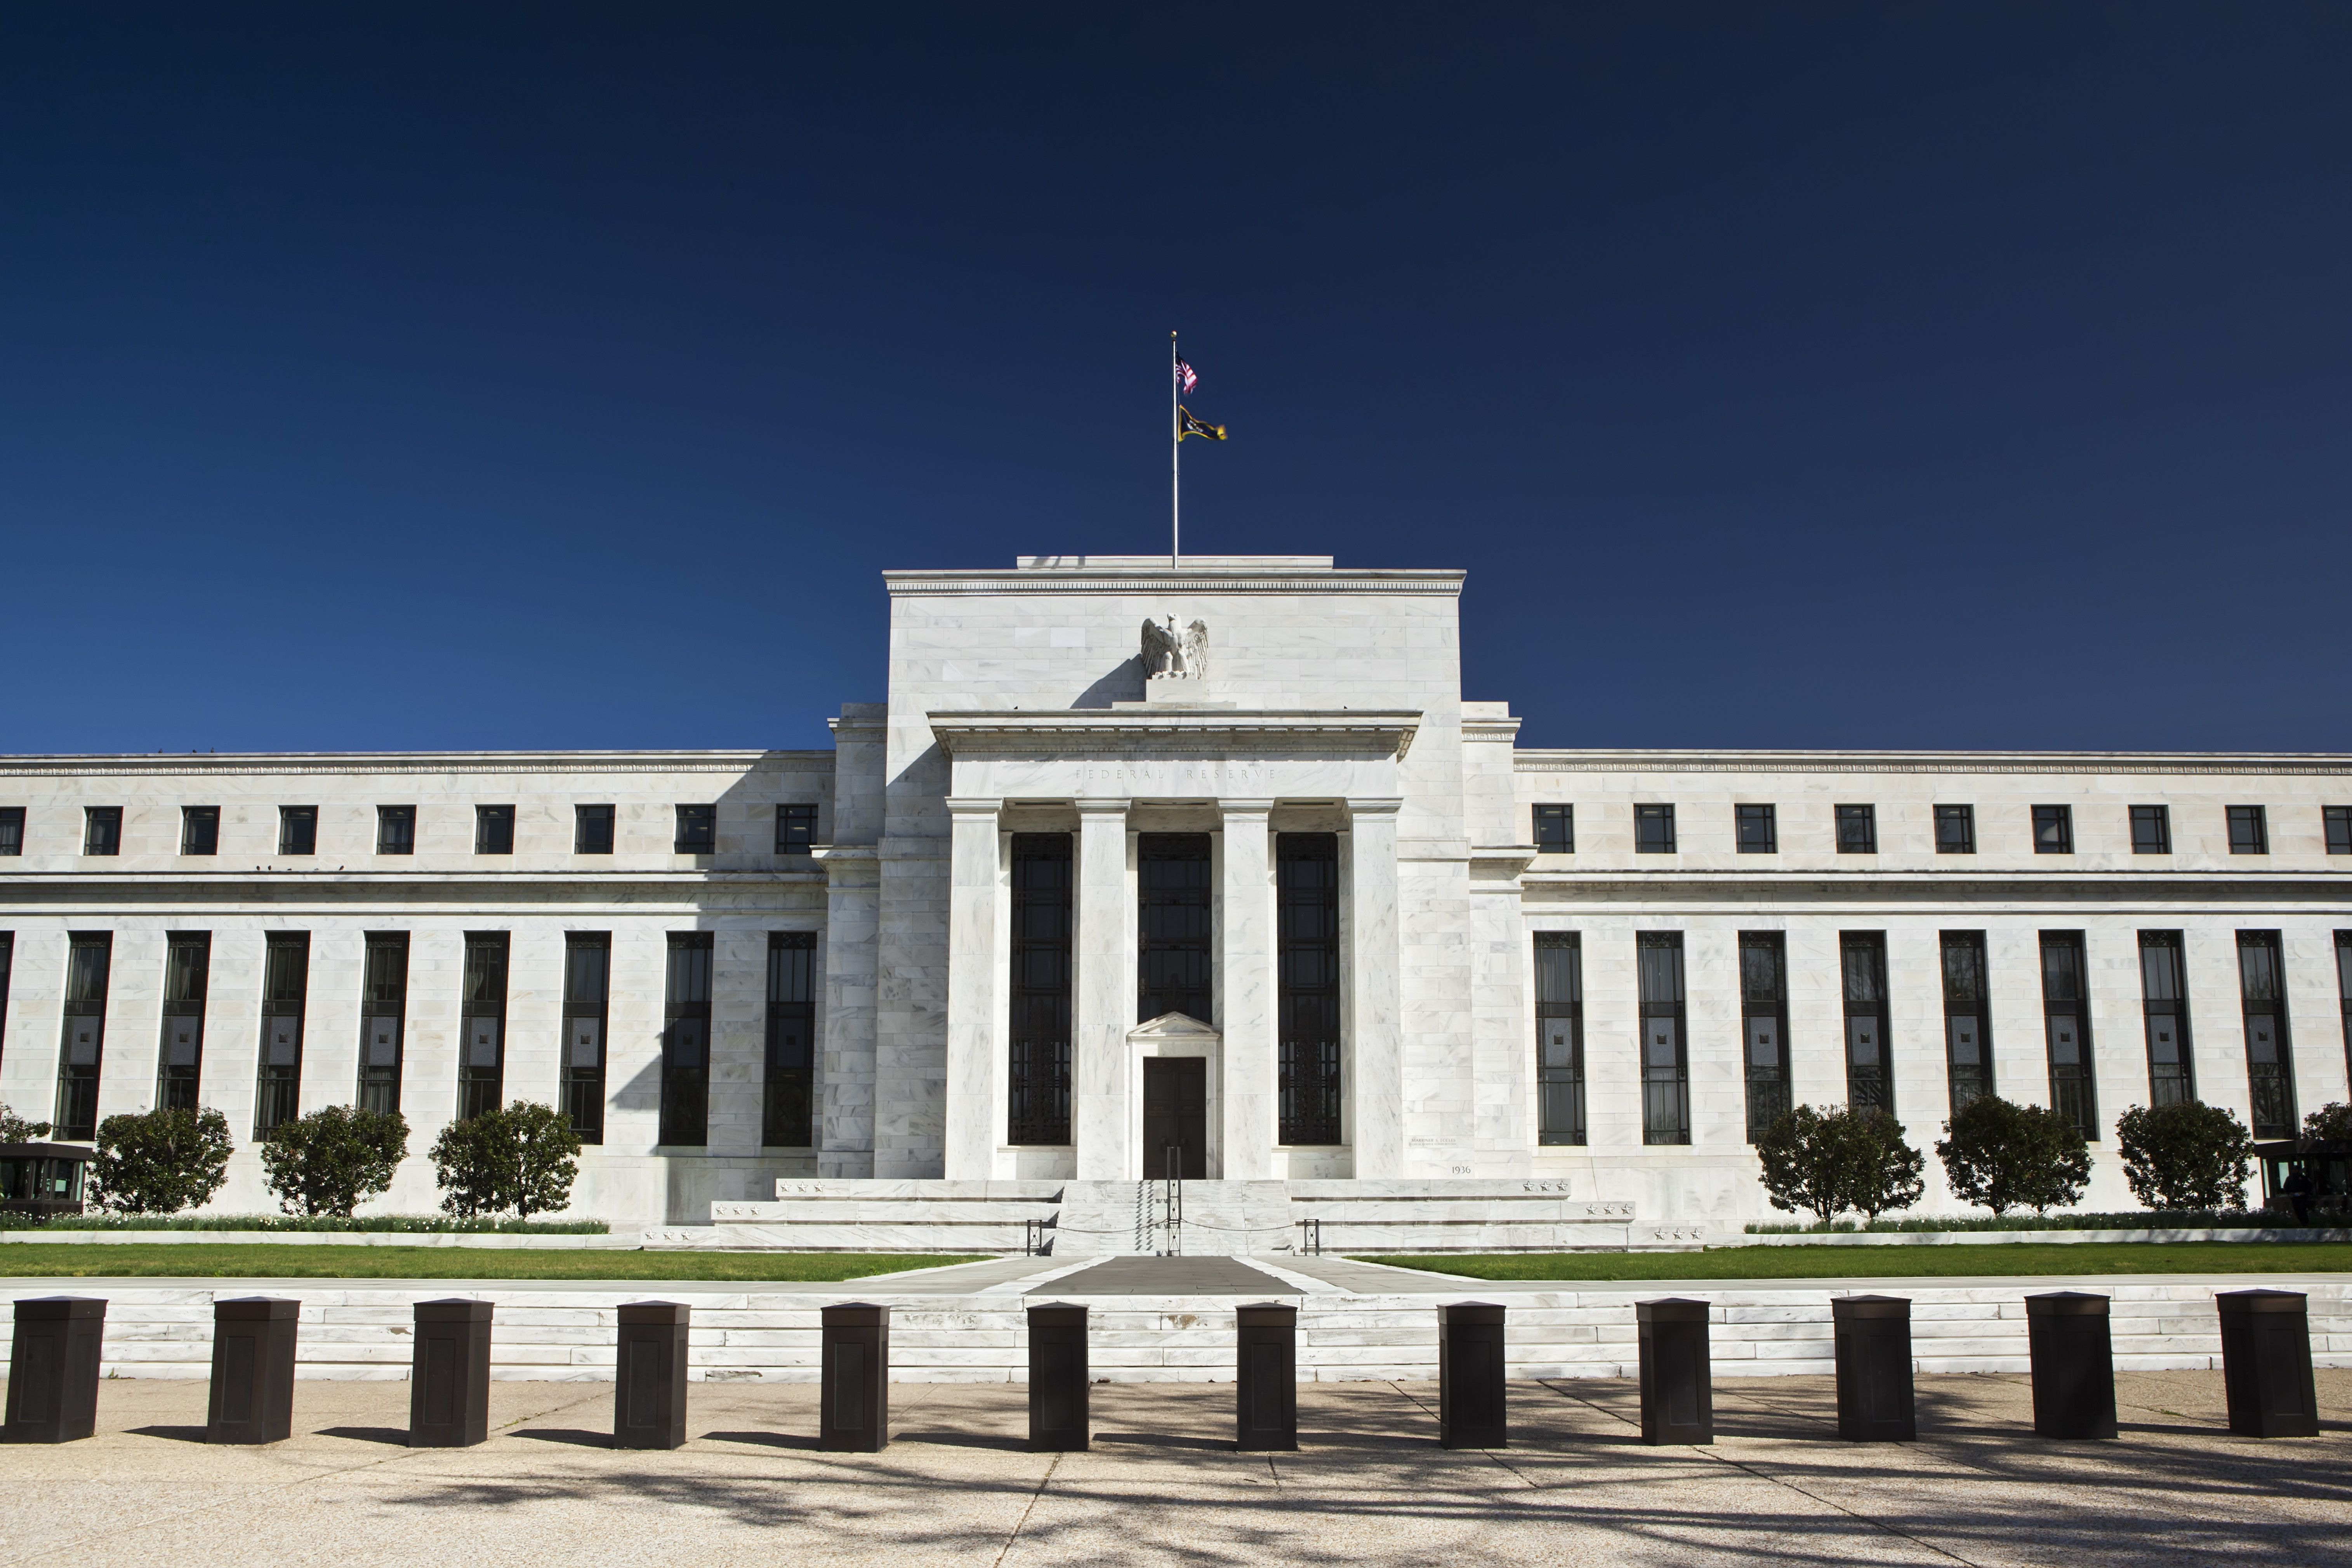 the federal reserve and rates essay Working within the federal reserve system, the new york fed implements monetary policy, supervises and regulates financial institutions and helps maintain the nation's payment systems  they reduce the cost of borrowing from the fed relative to the federal funds rate.